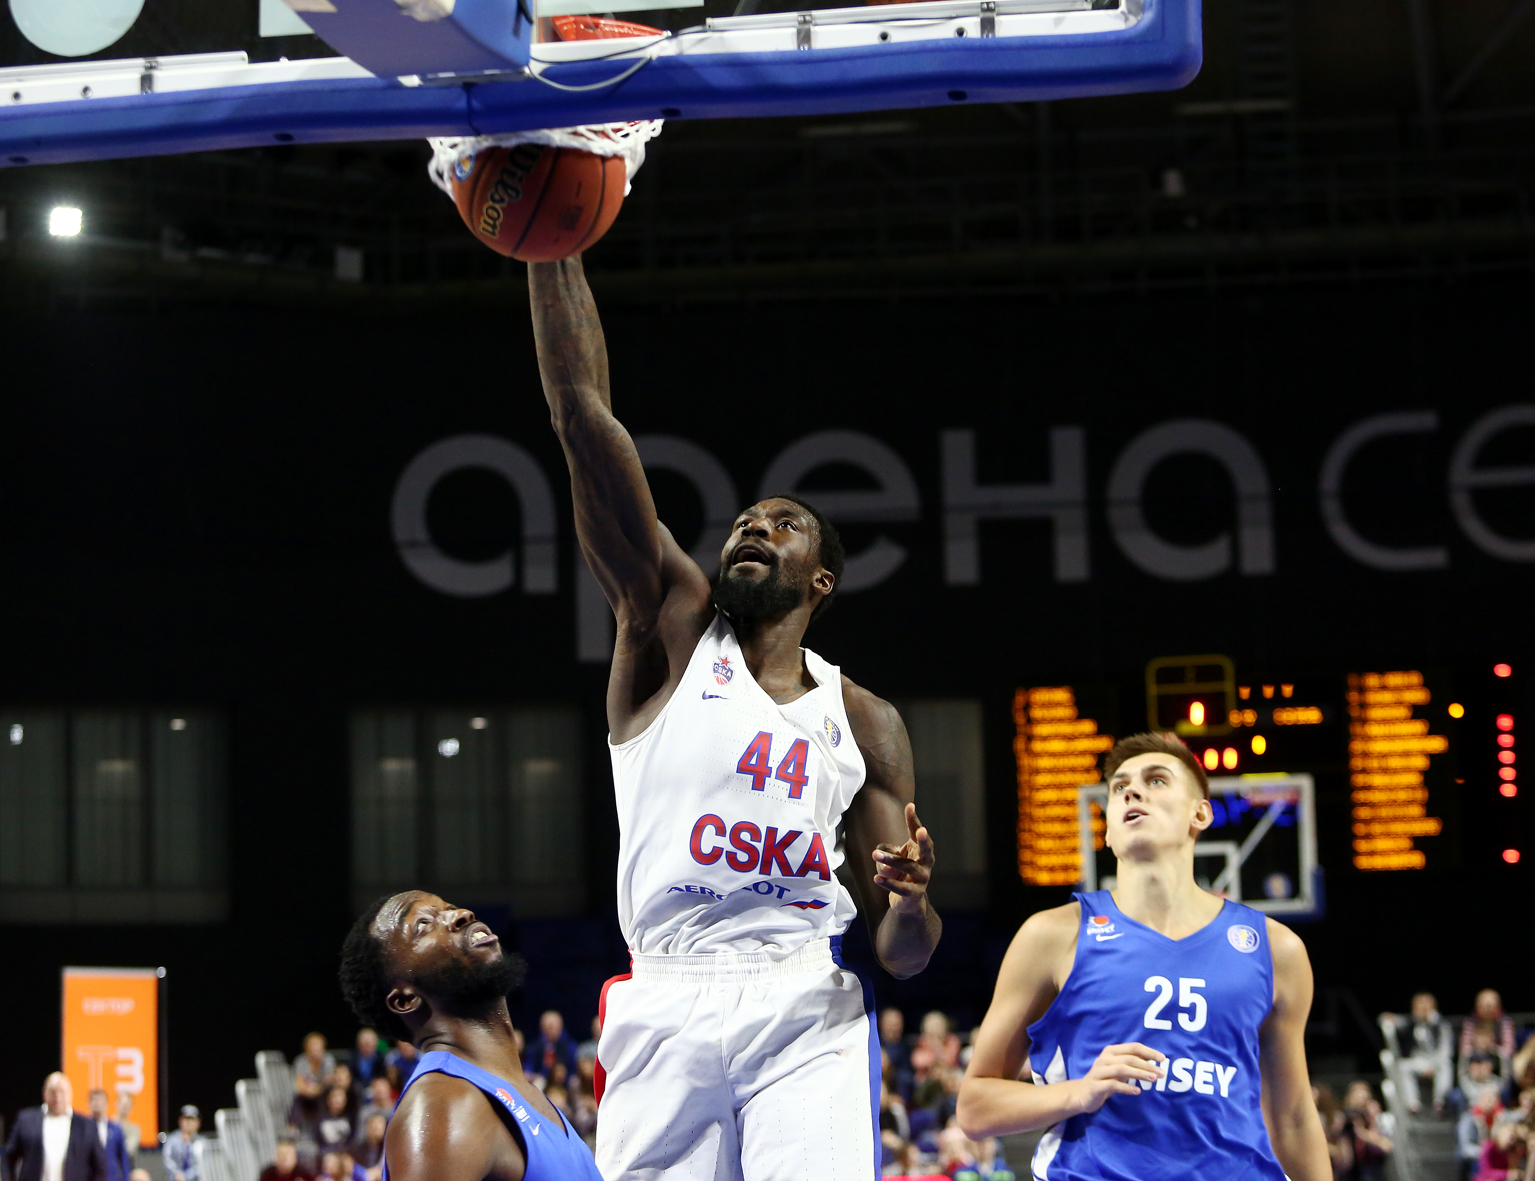 CSKA Opens Season With Win In Krasnoyarsk